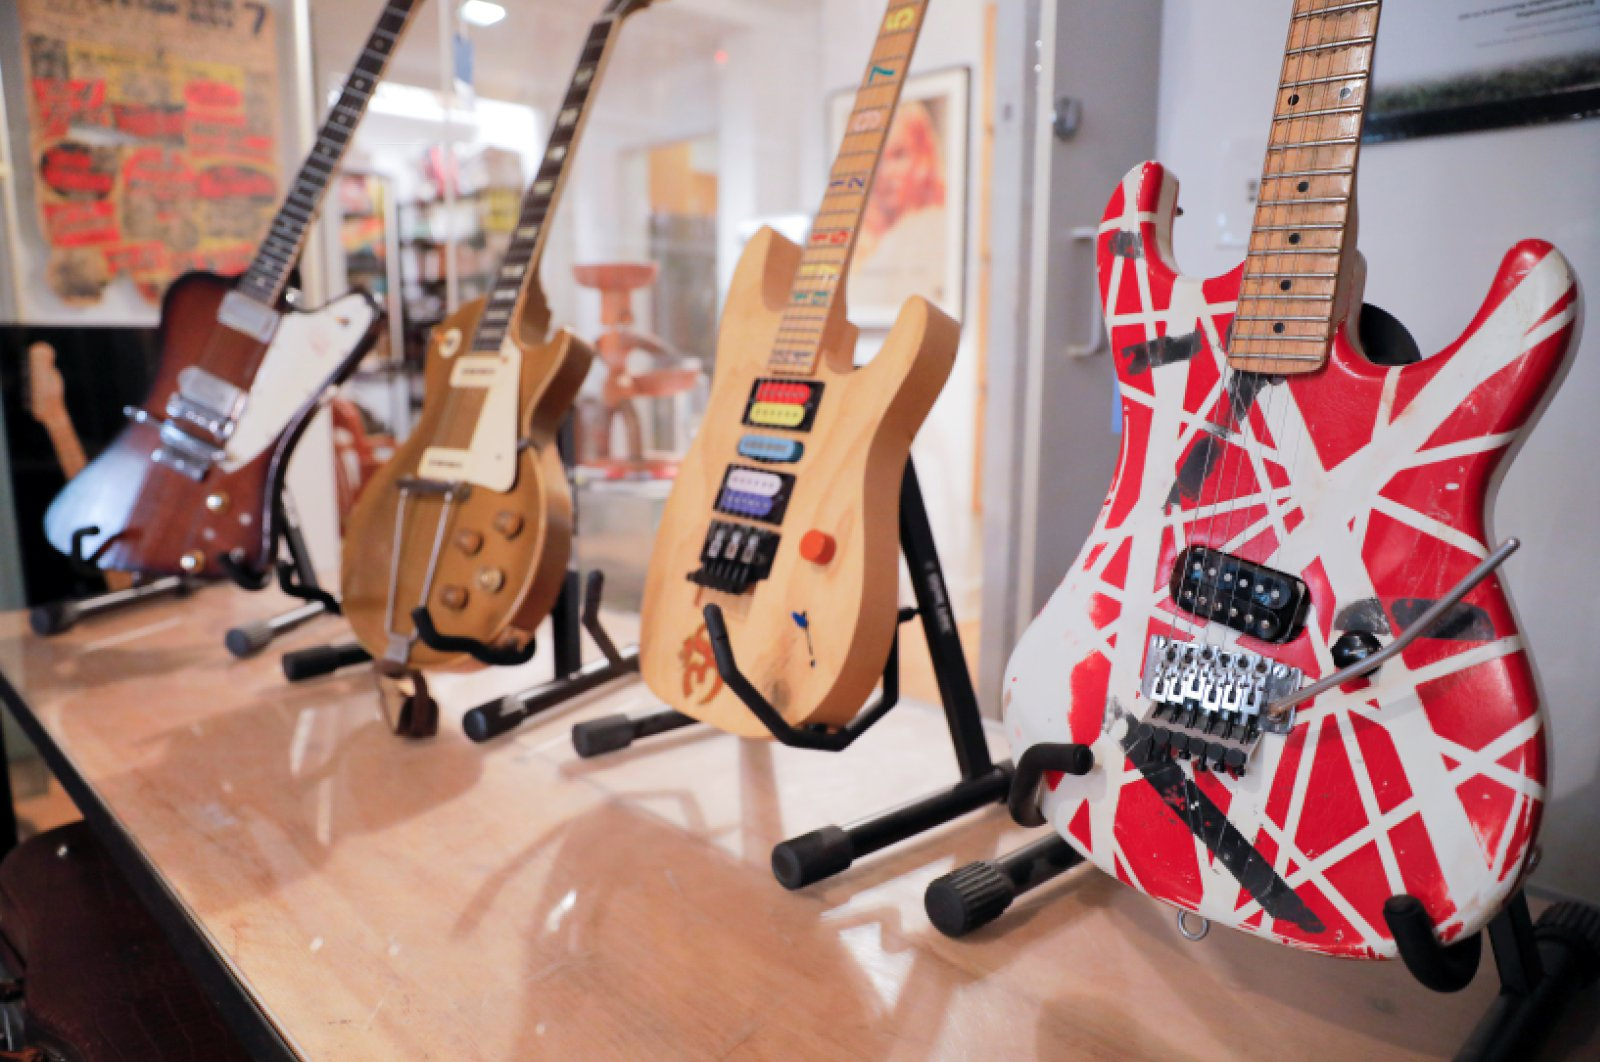 """(L-R) A Gibson Firebird guitar that belonged to Allen Collins of Lynyrd Skynyrd, a single owner 1952 Gibson Les Paul gold top, Jason Becker's """"Numbers"""" guitar and Eddie Van Halen's Kramer Stryper guitar are seen on stands ahead of the """"Century of Music"""" auction held at Guernsey's auction house in New York City, New York, U.S., July 6, 2021. (REUTERS Photo)"""